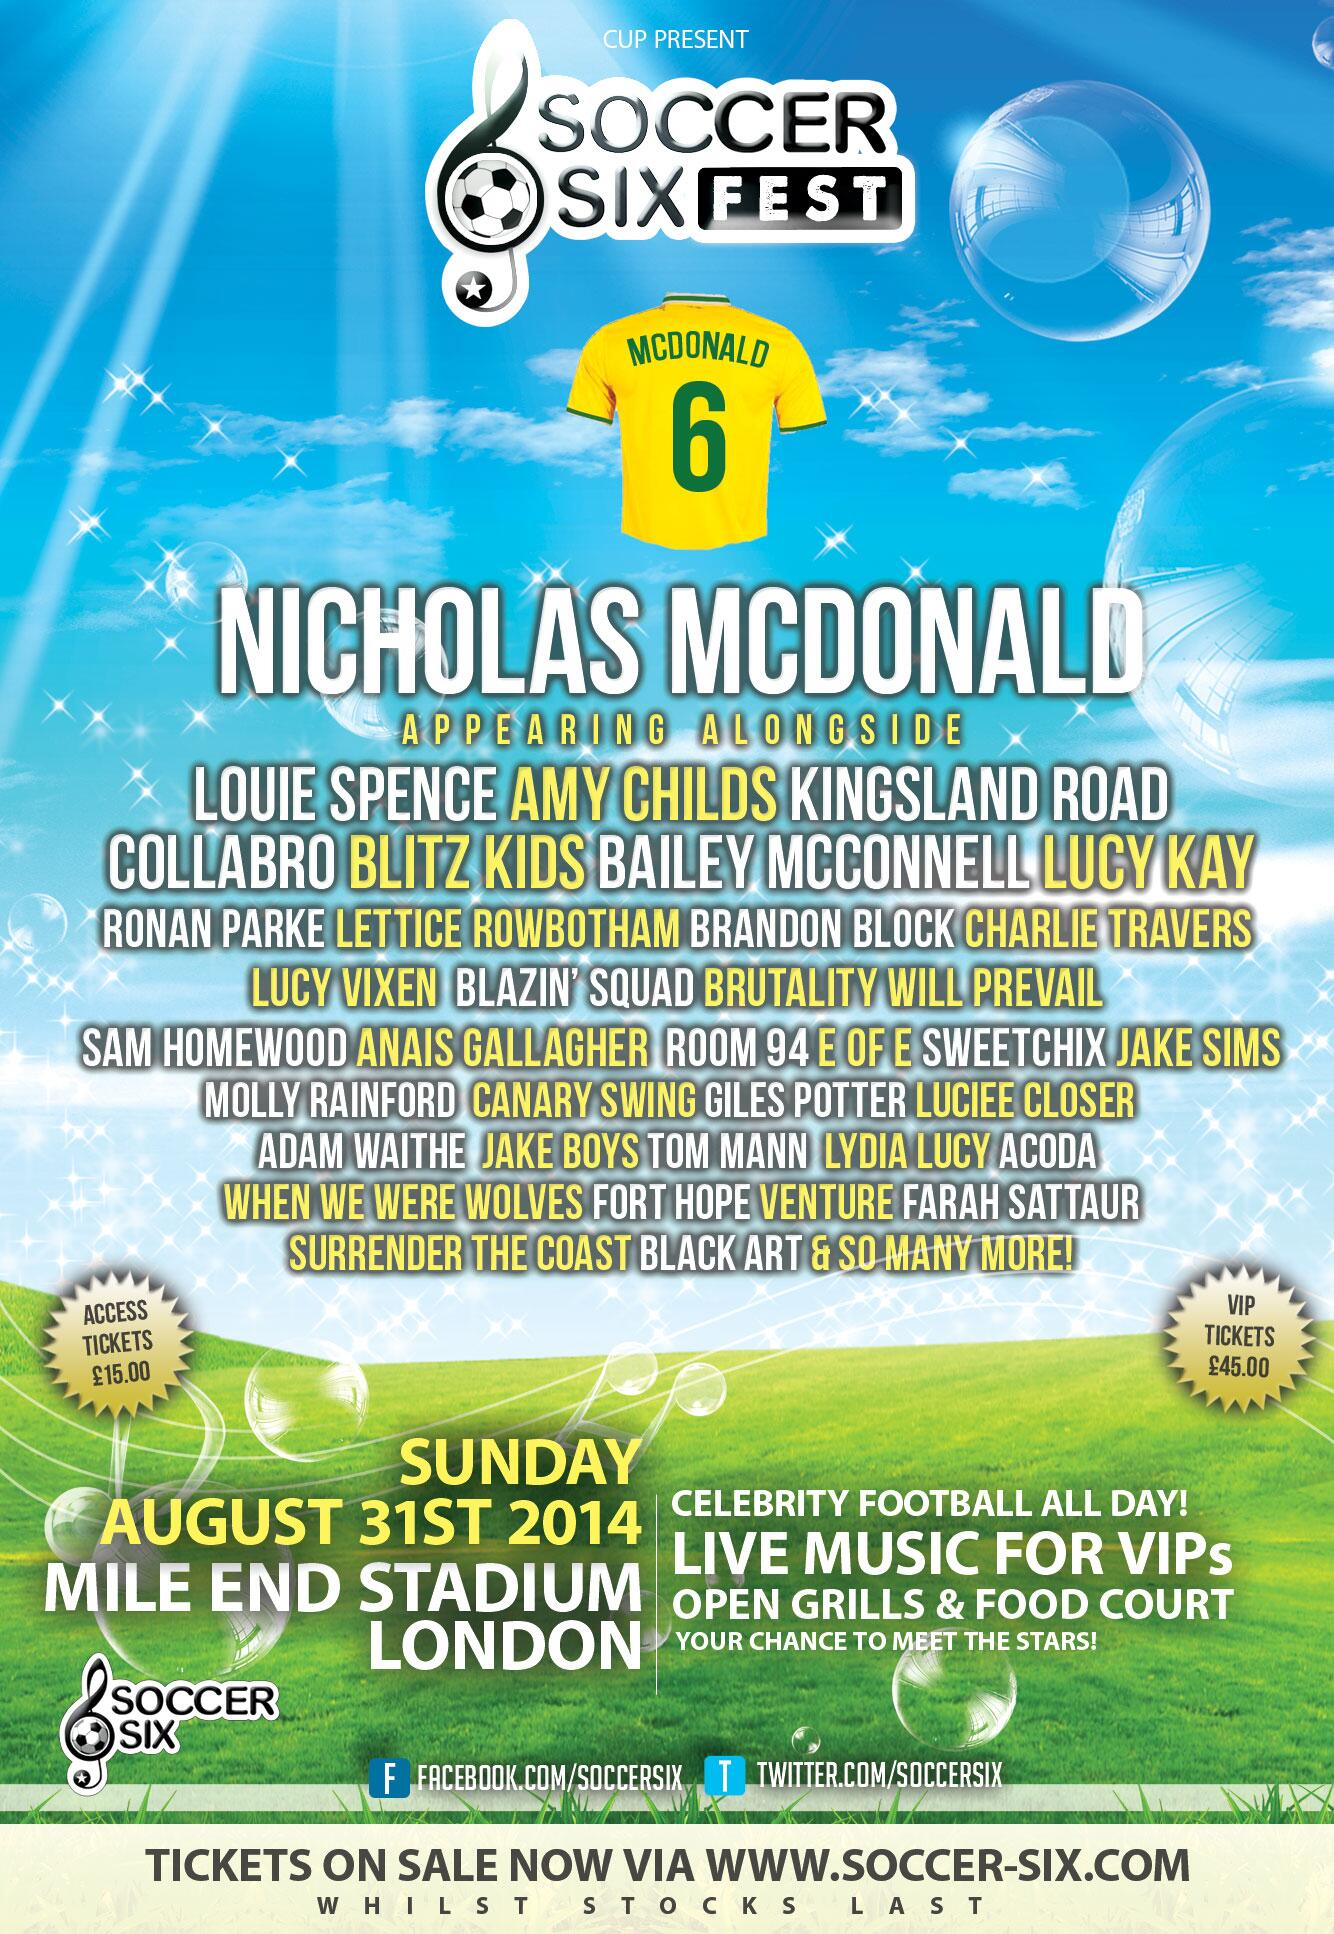 RT @SoccerSix: WHO'S EXCITED to see @nickymcdonald1 at #SoccerSixFest? Grab your tickets: http://t.co/3EFtLsZB24! http://t.co/ir38f0onH9